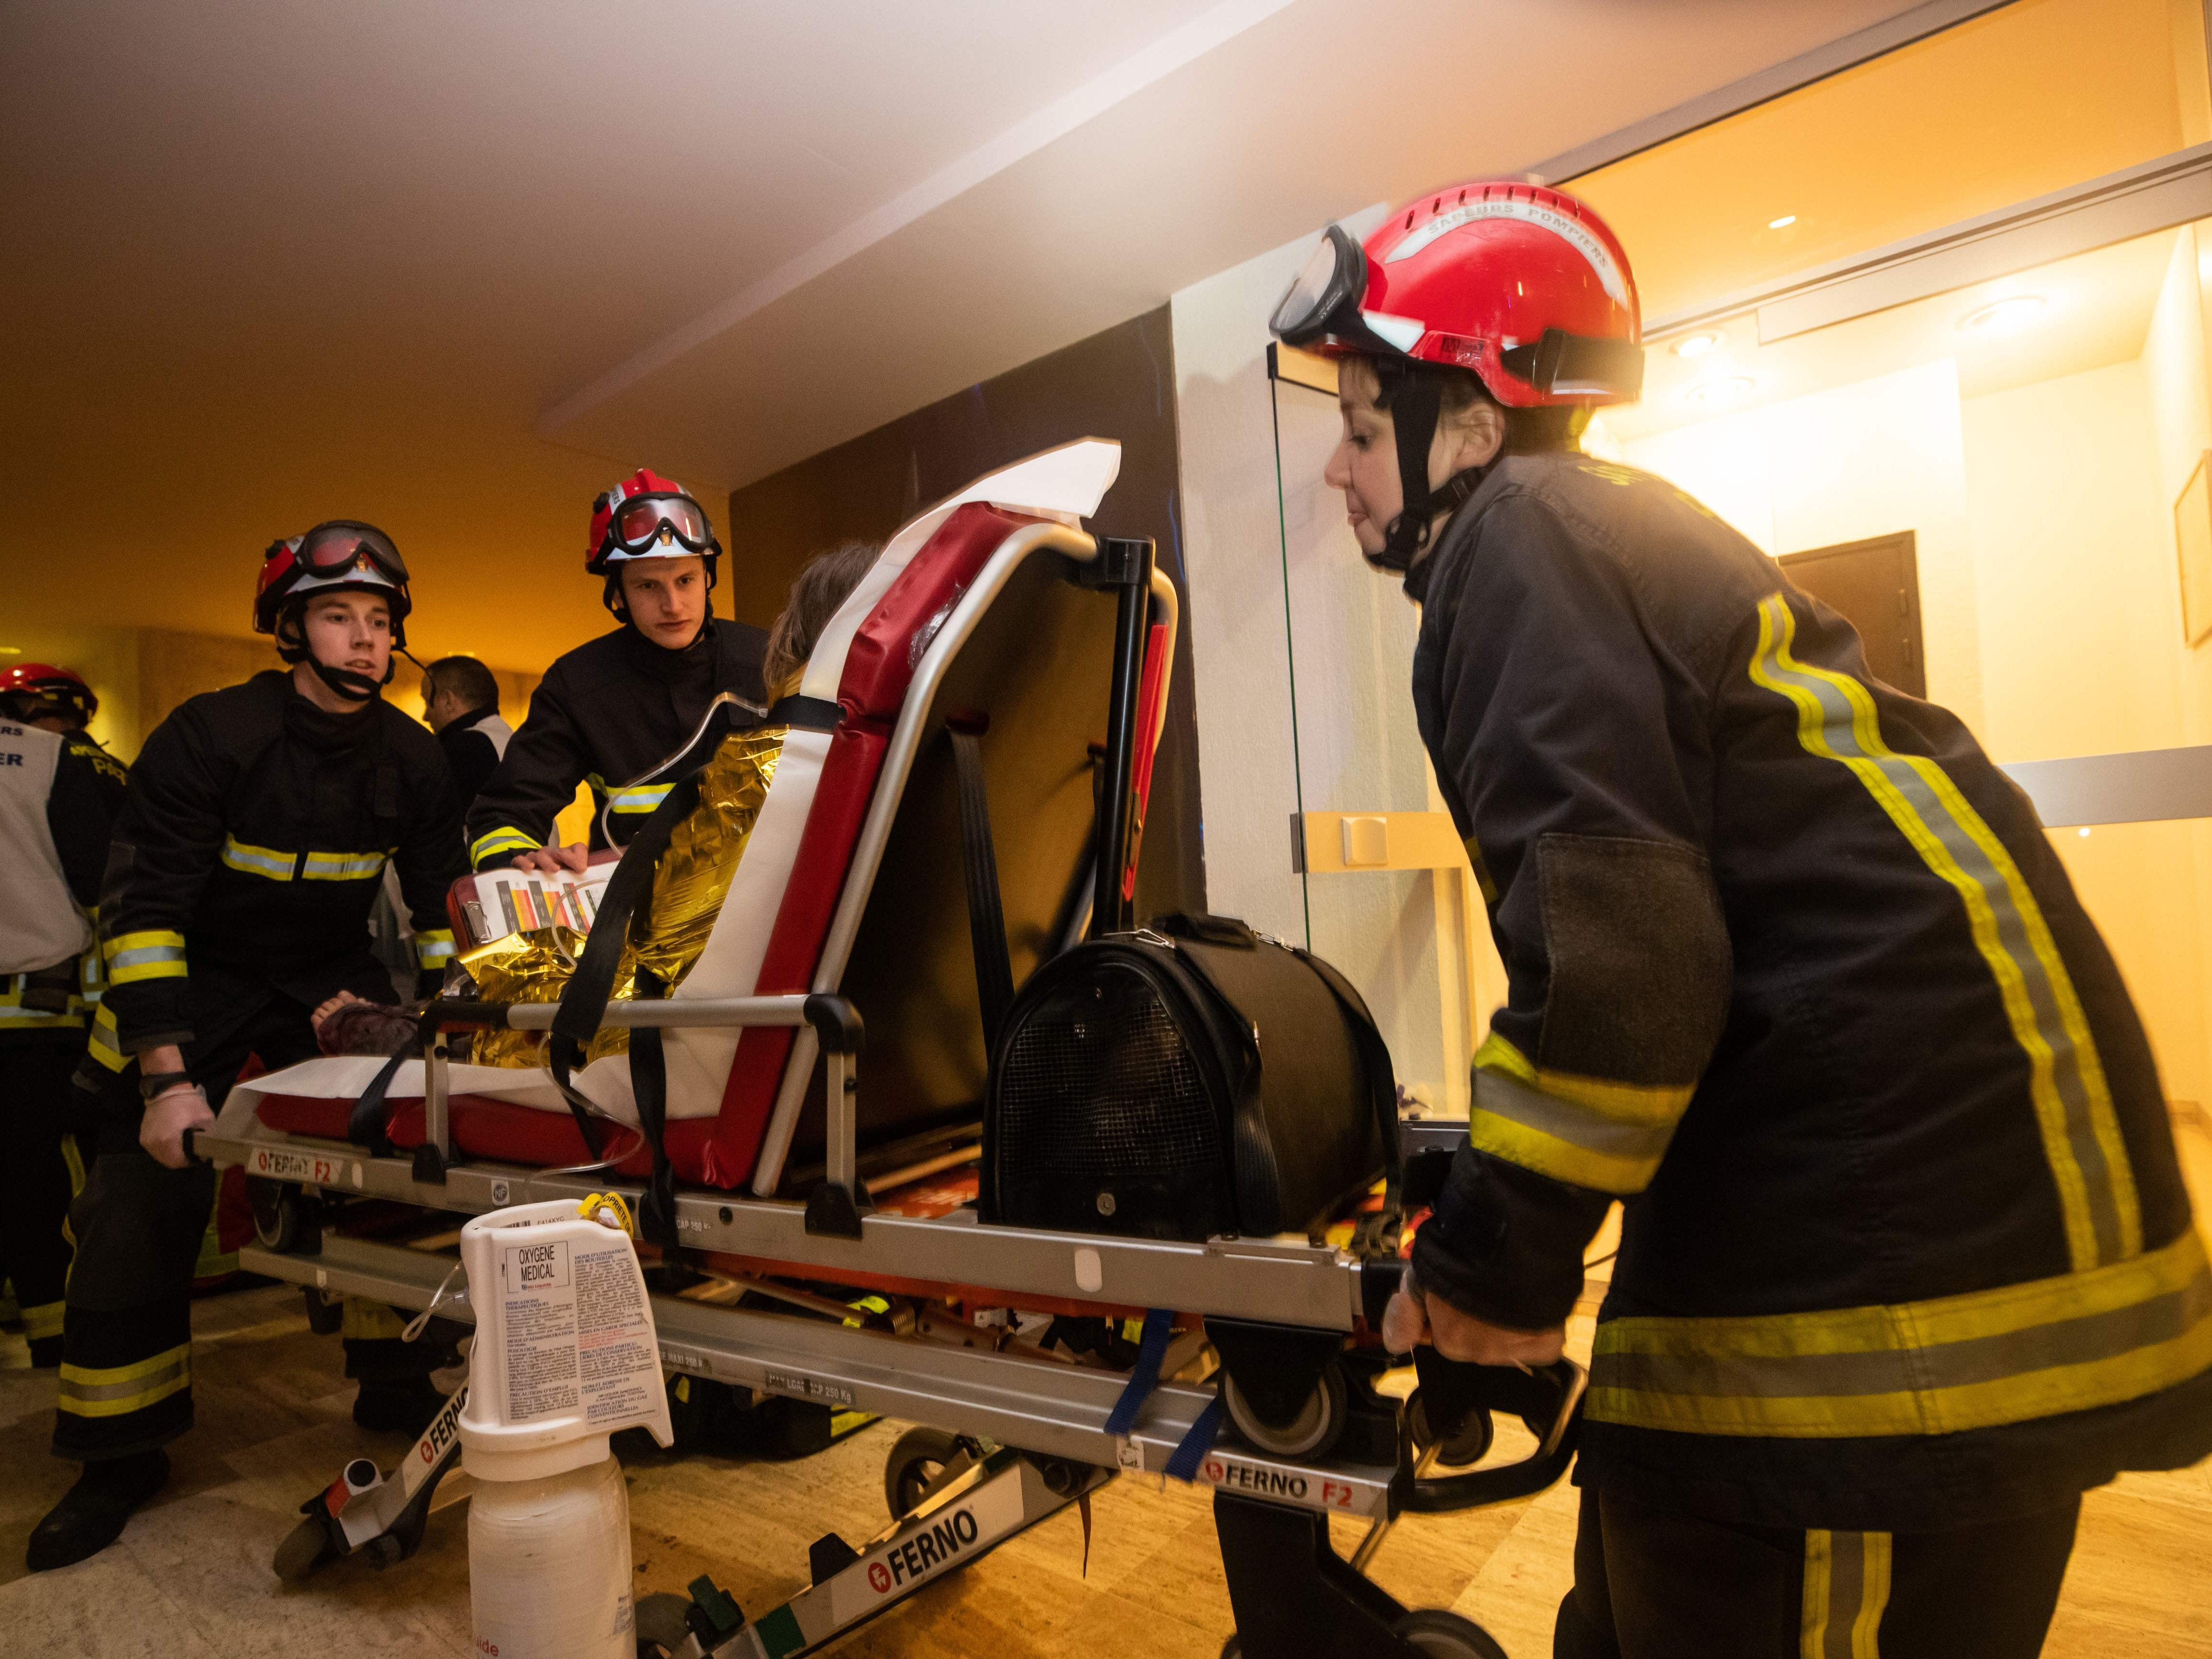 This handout picture taken and released by the Paris firefighters brigade in the night of Feb. 5, 2019 shows firemen carrying a person and her cat on a gurney in a hospital following a fire that killed 8 in a building in Erlanger street in the 16th arrondissement in Paris.